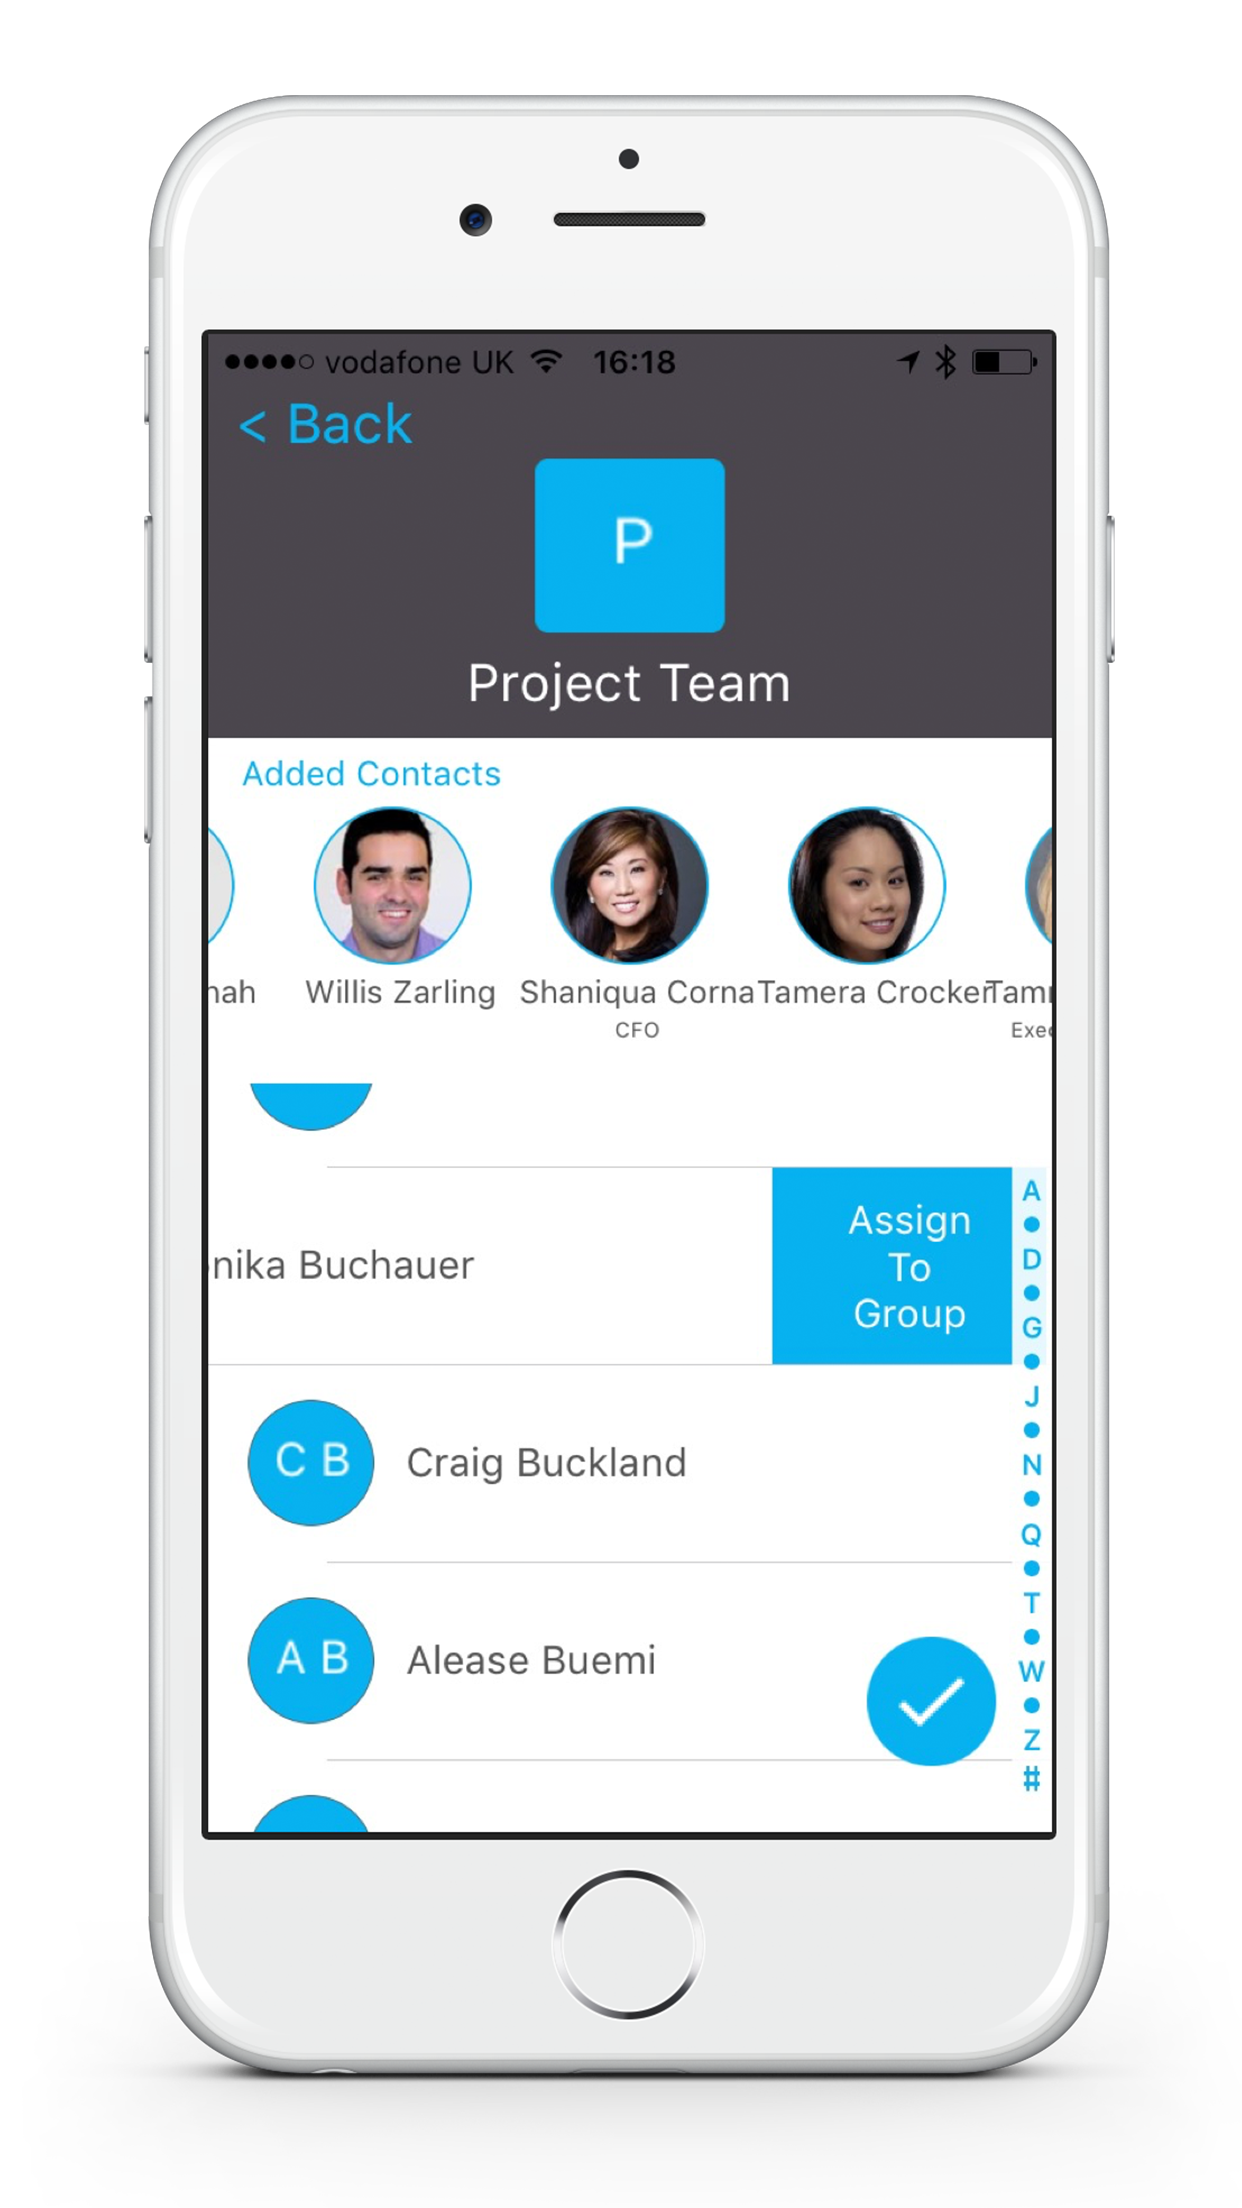 Add Contacts to Group